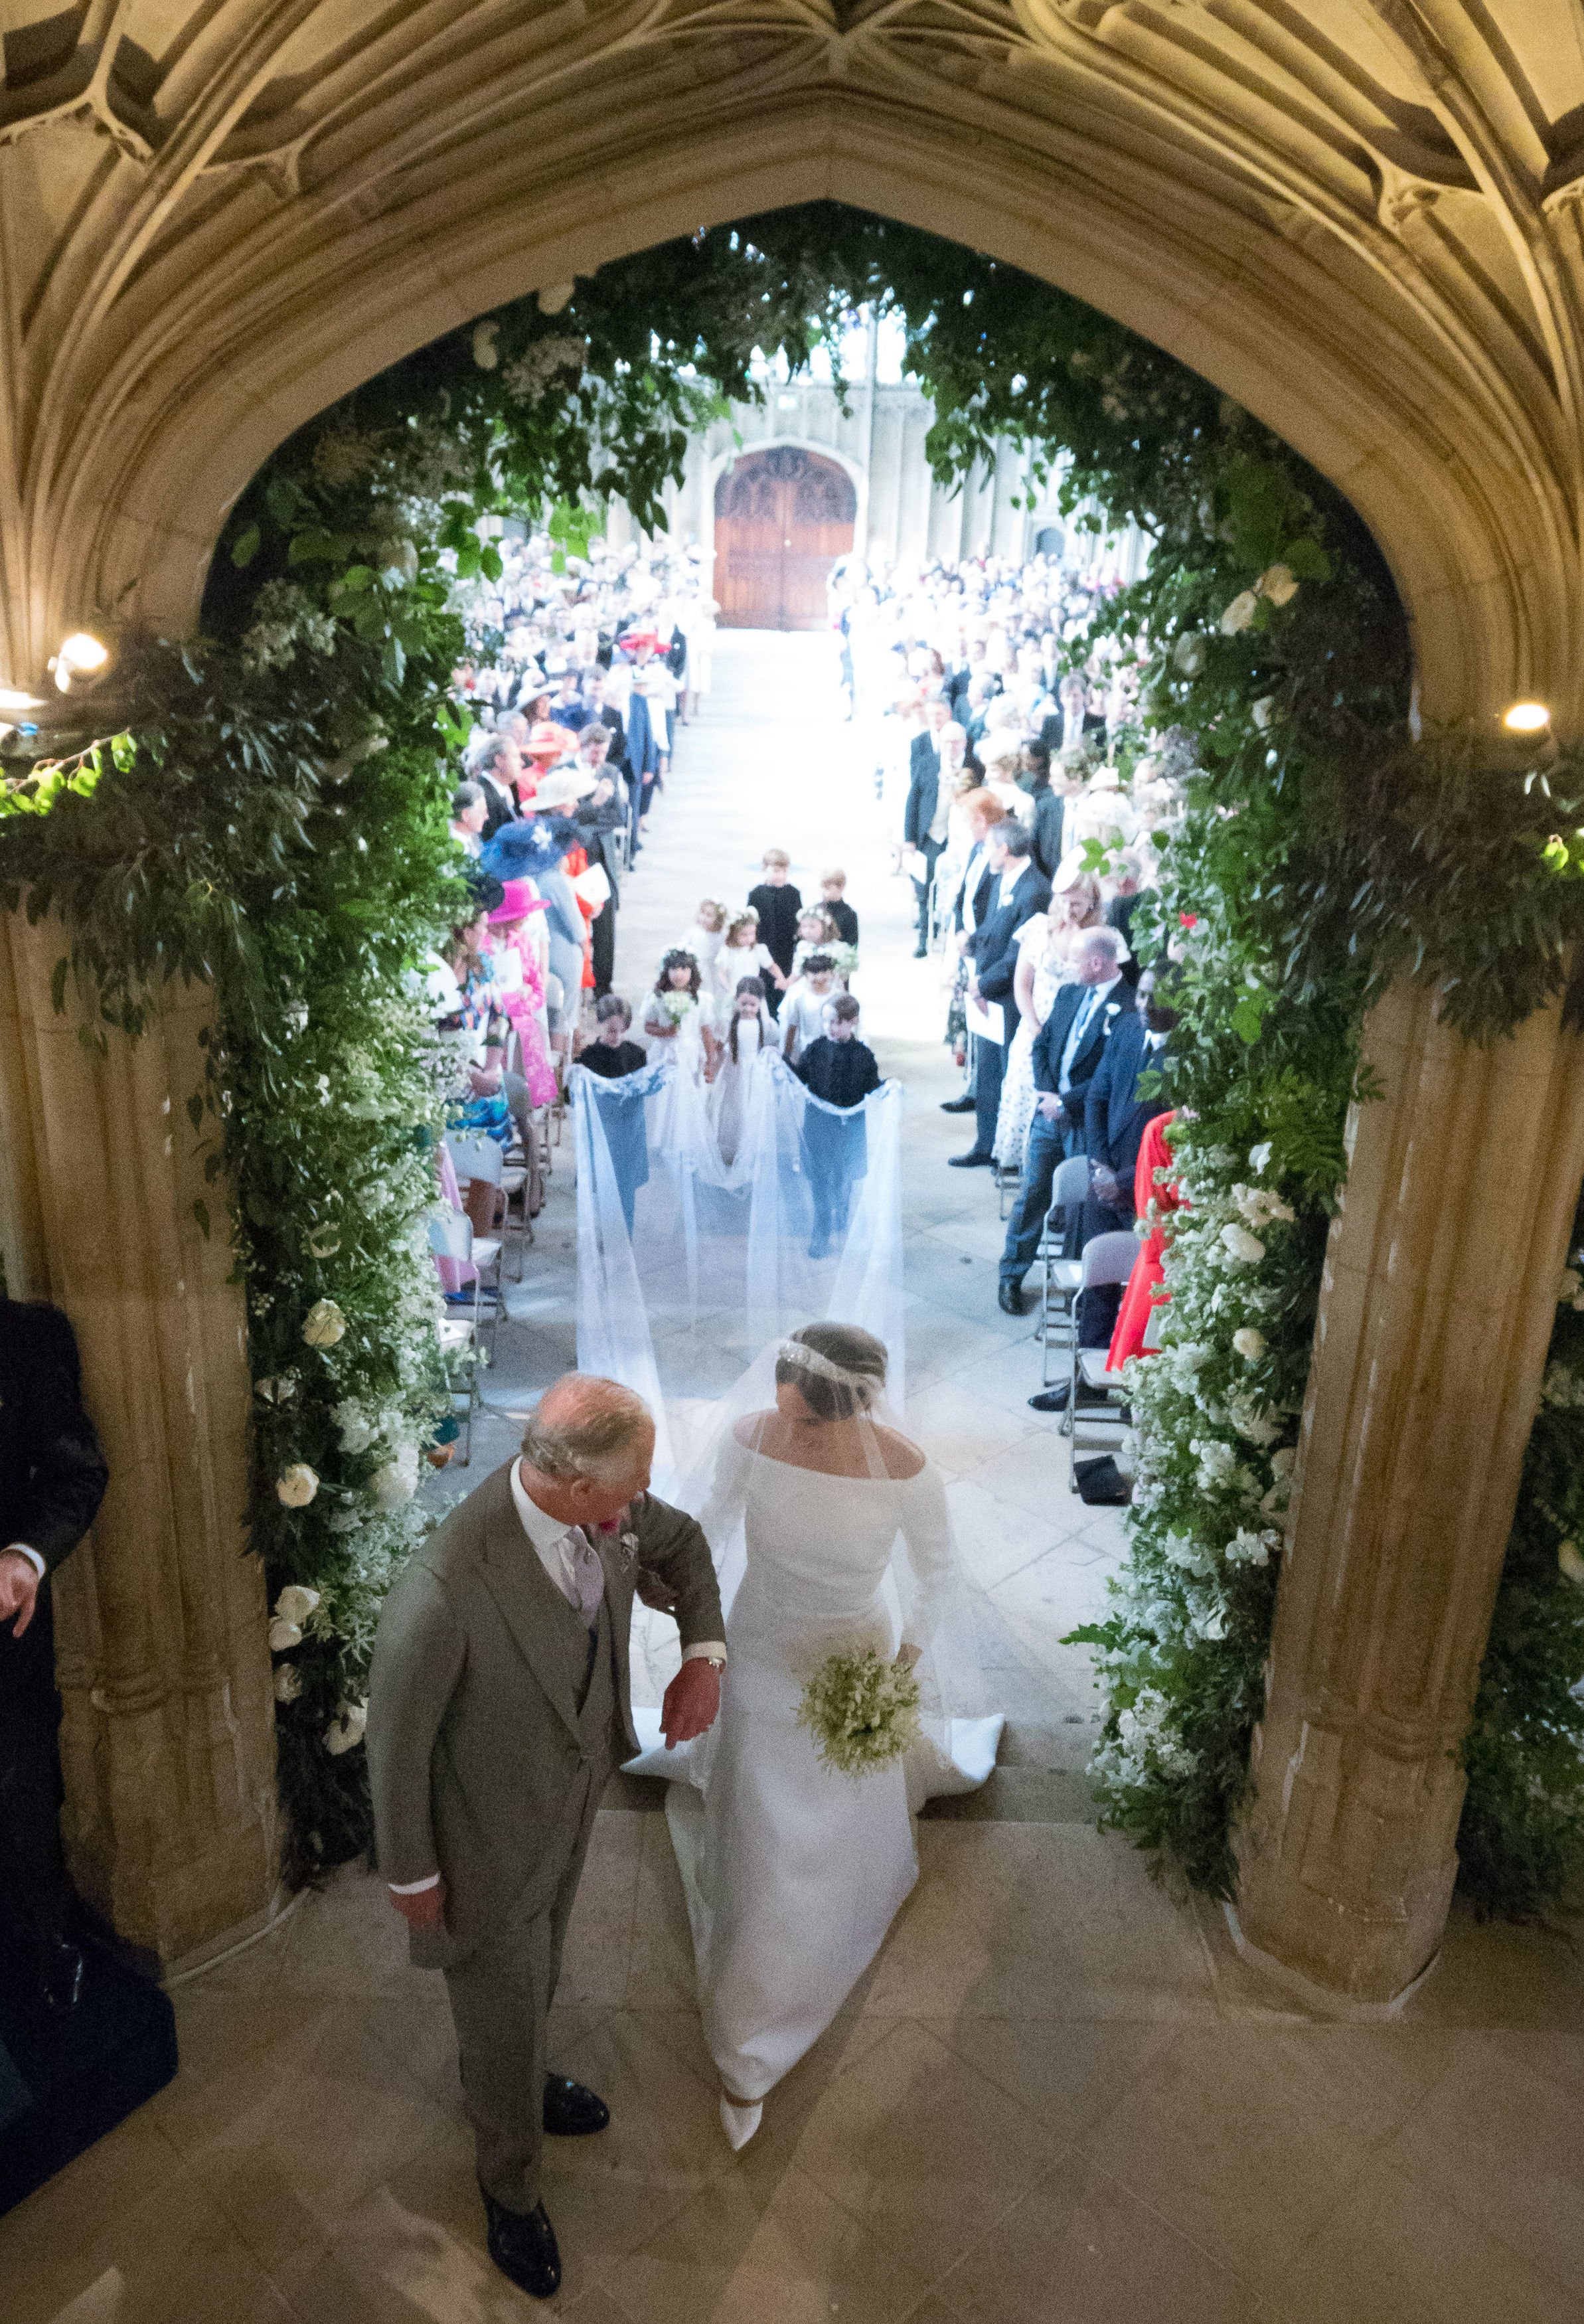 Meghan Markle, accompanied by Britain's Prince Charles, Prince of Wales walks down the aisle in St George's Chapel, Windsor Castle, in Windsor, on May 19, 2018 during their wedding ceremony. | Source: Getty Images